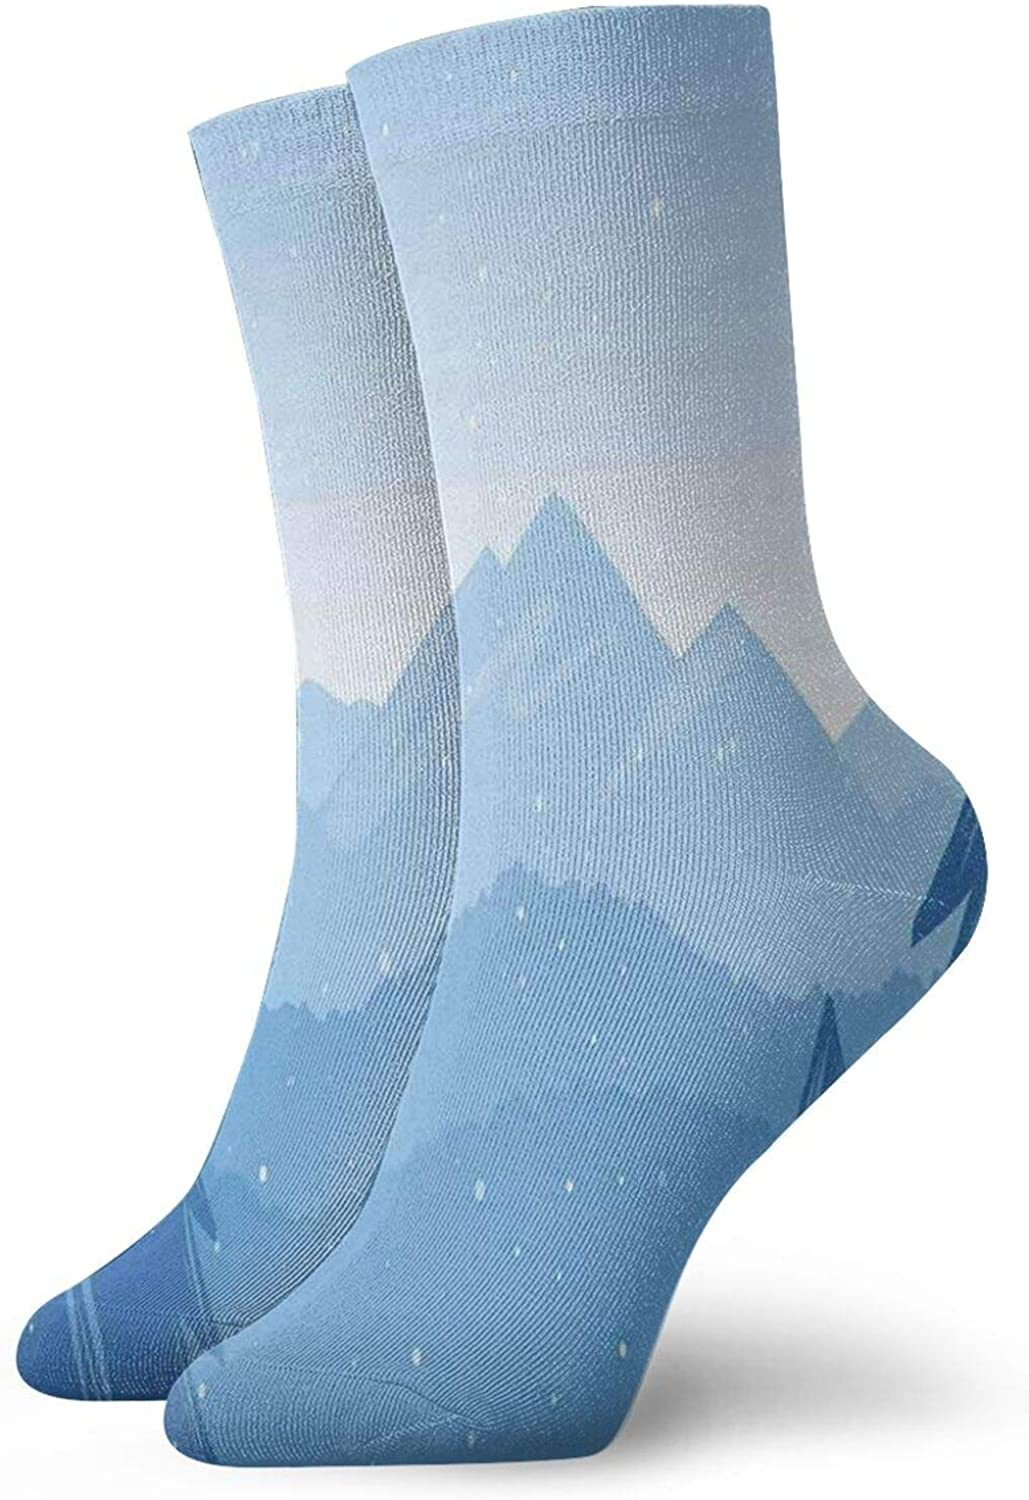 Compression High Socks-Blue Winter Hand Drawn Style Mountains Snowy Landscape Spruce Trees Best for Running,Athletic,Hiking,Travel,Flight